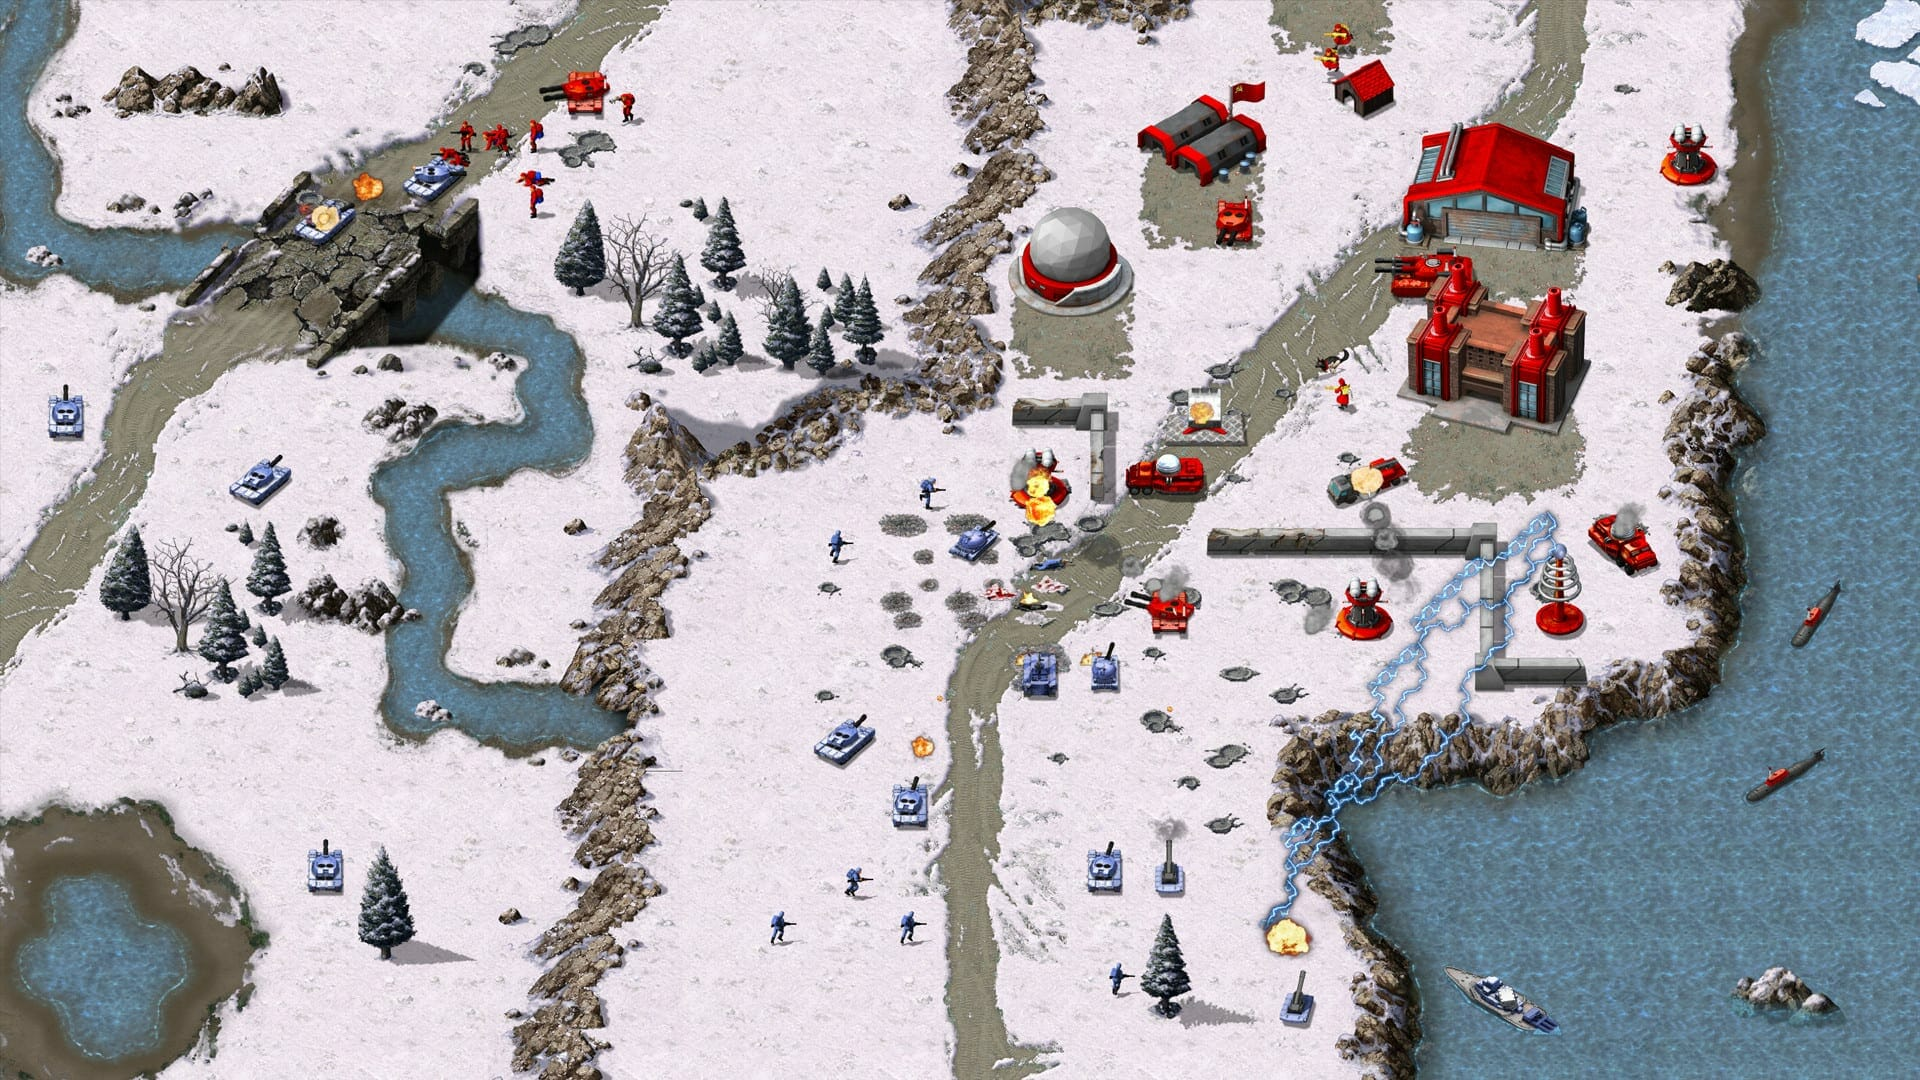 Command and Conquer system requirements